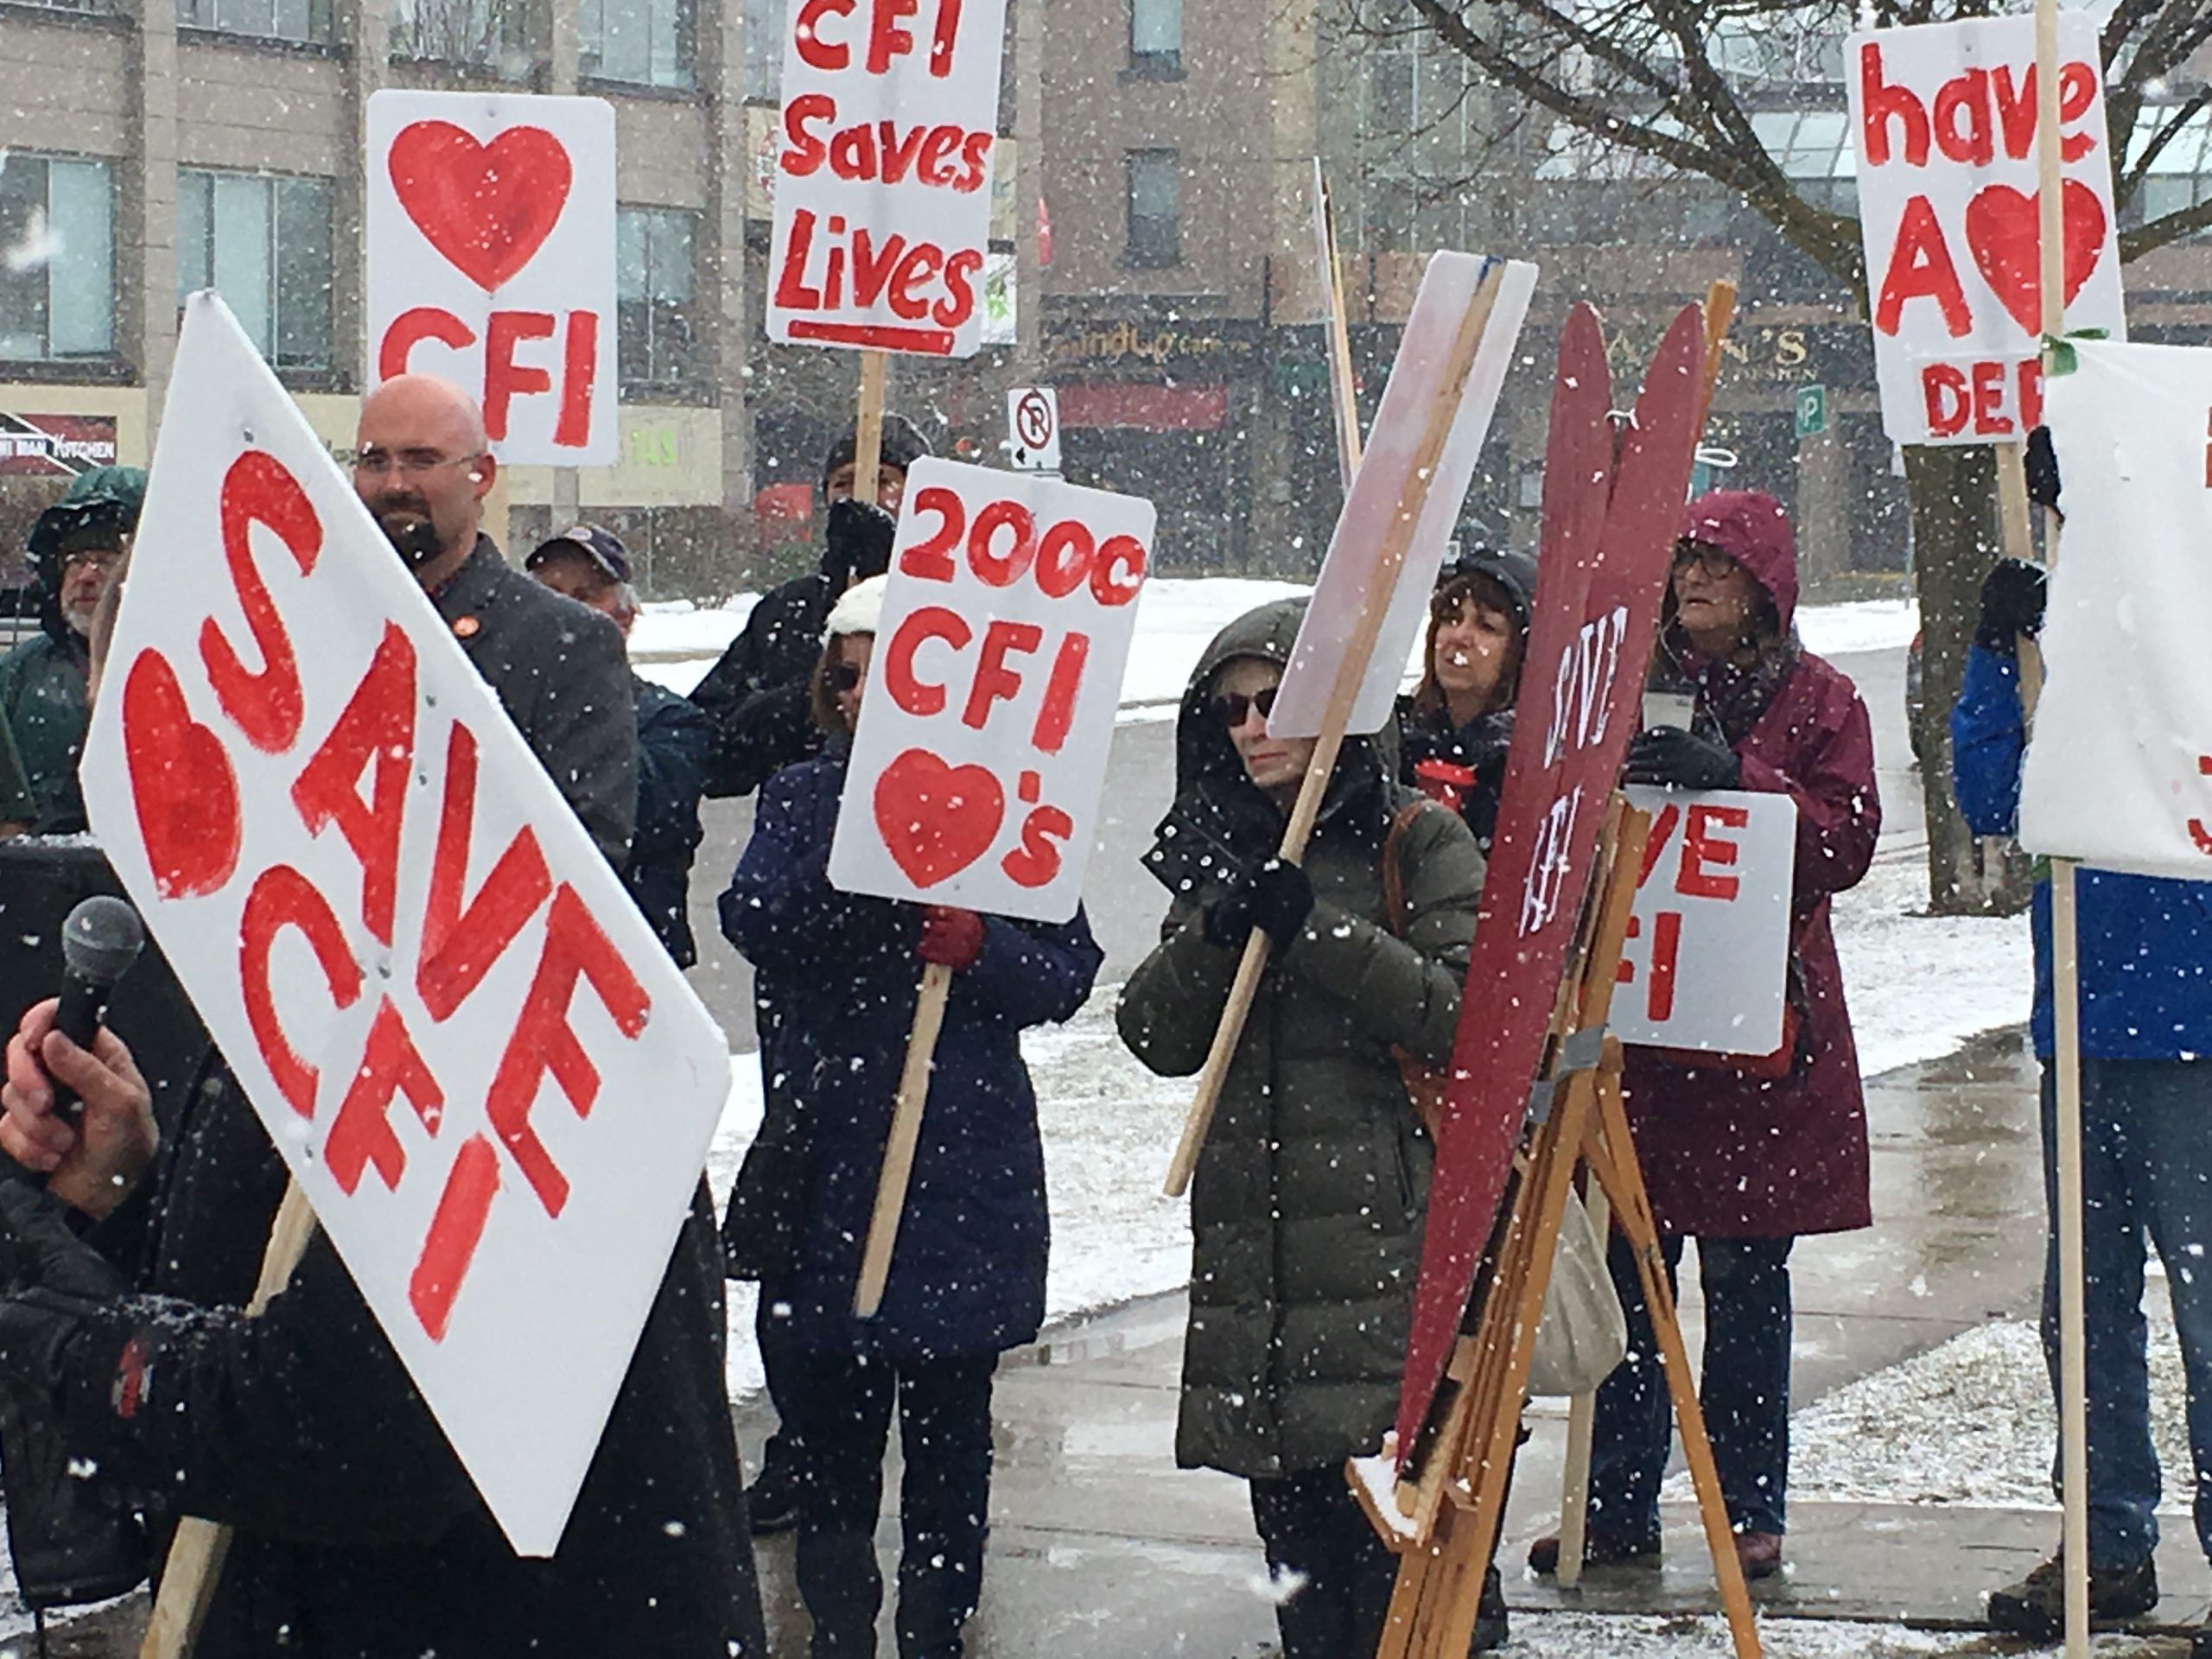 Cardiac Fitness Institute protests take to local MPP office